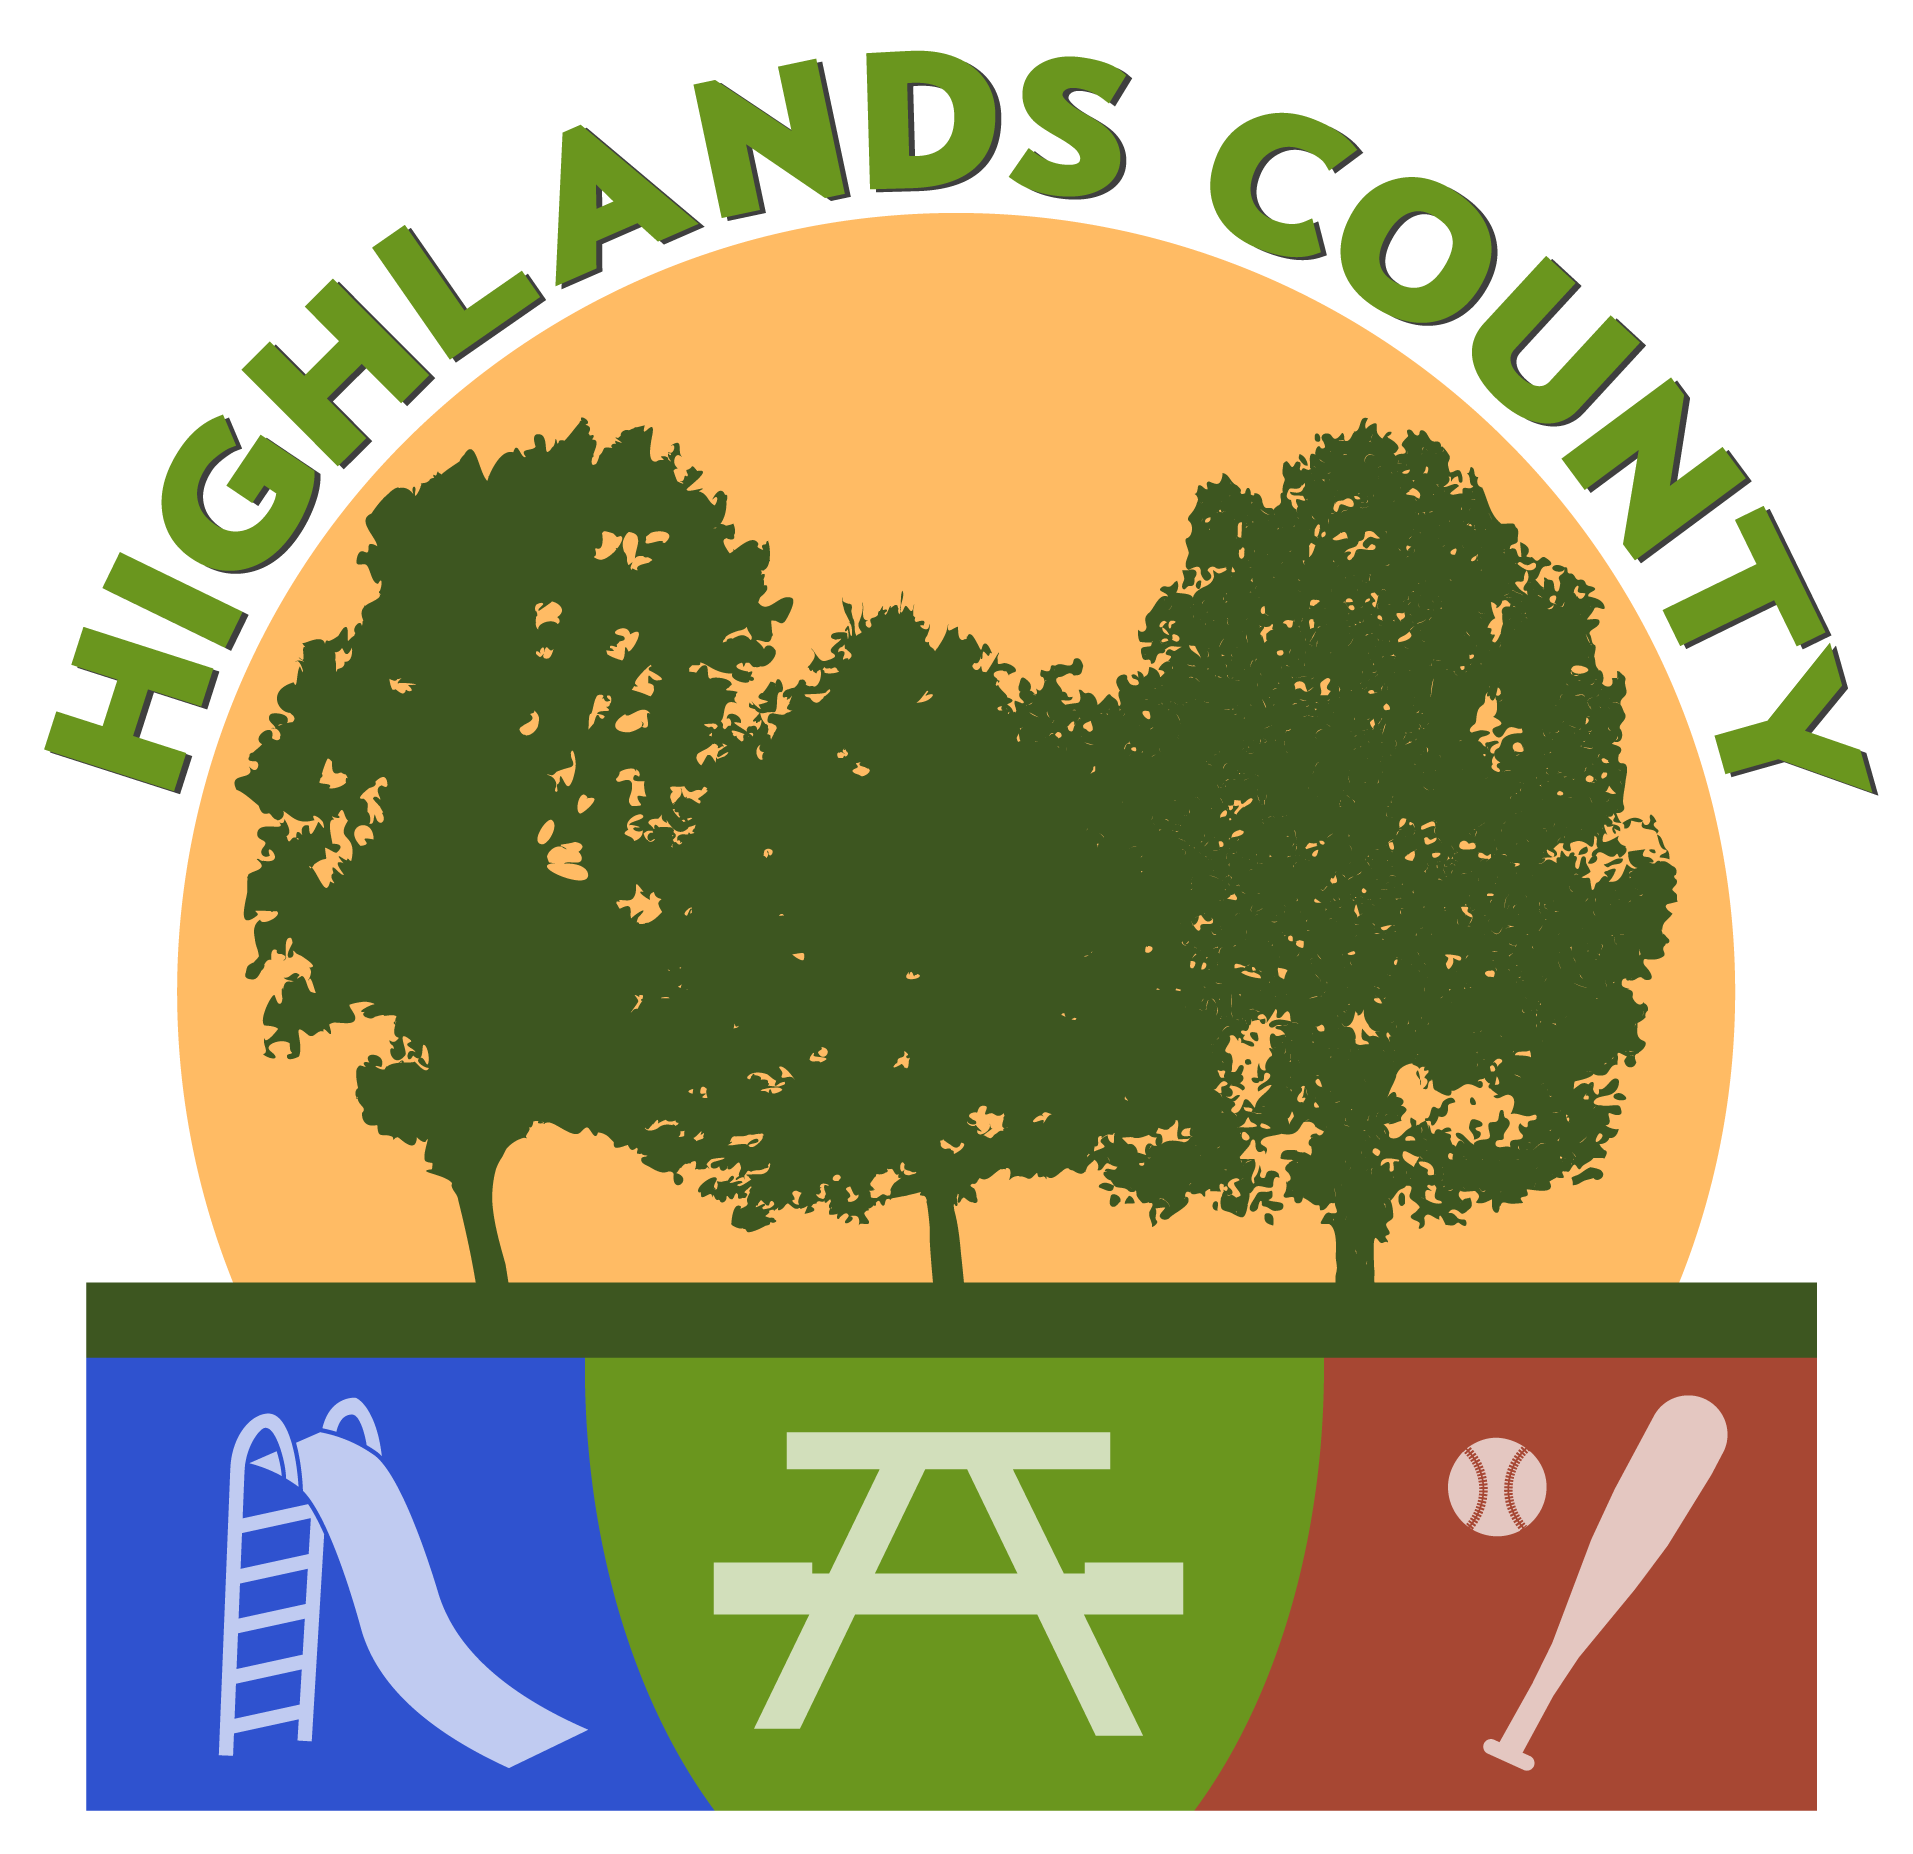 Highlands County Parks & Recreation